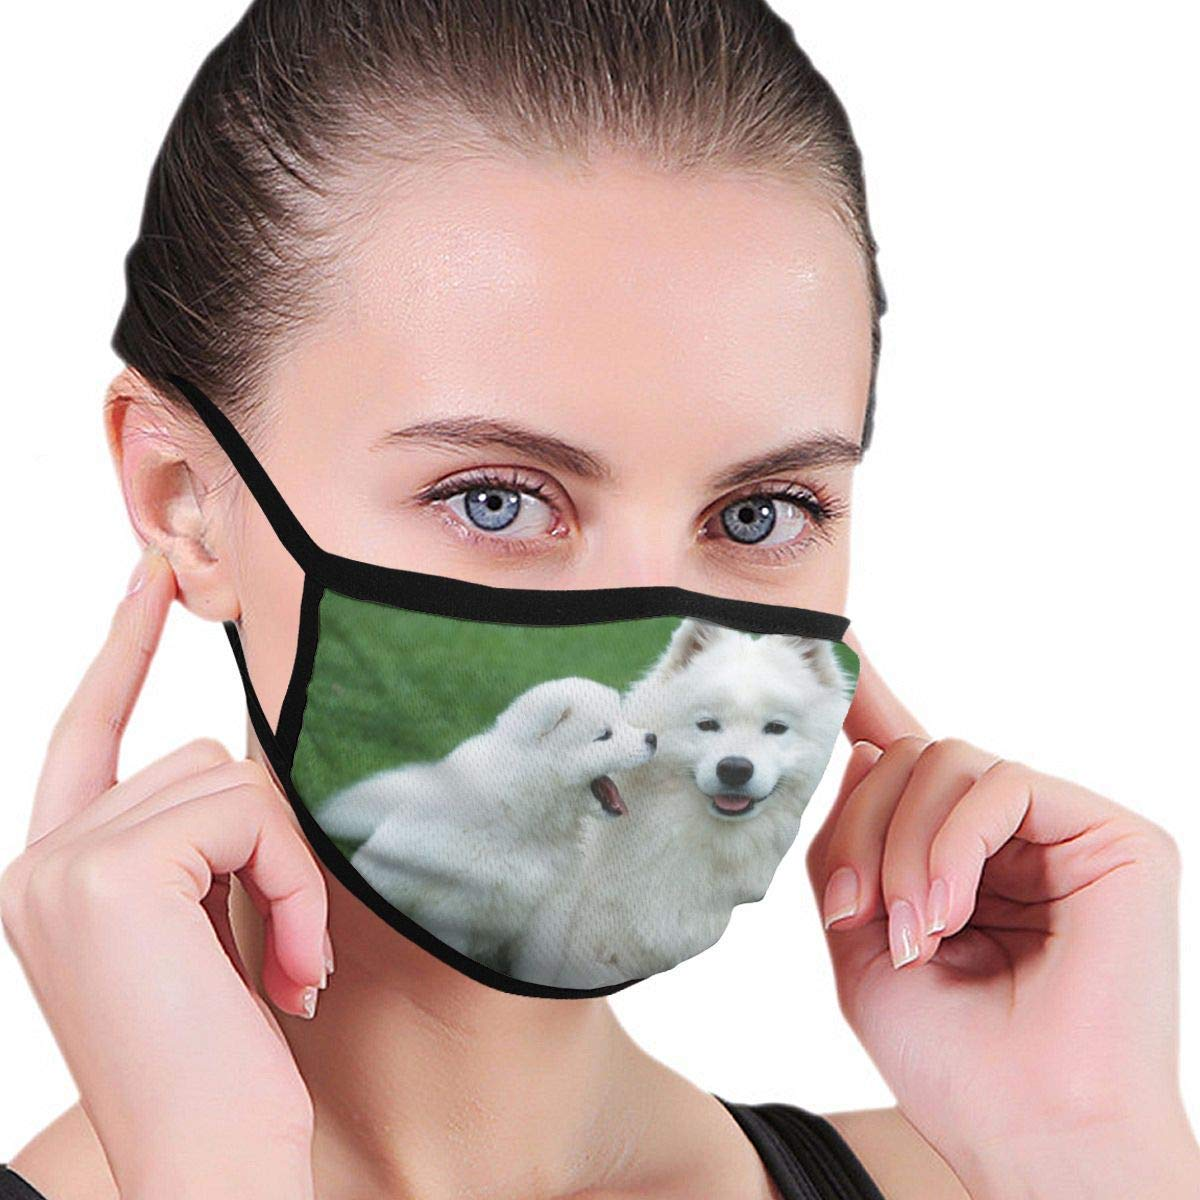 Bdwuhs Mascarillas Bucales Dogs Samoyed Washable Reusable Mouth Mask Cotton Anti Dust Half Face Mouth Mask For Men Women Dustproof with Adjustable Ear Loops